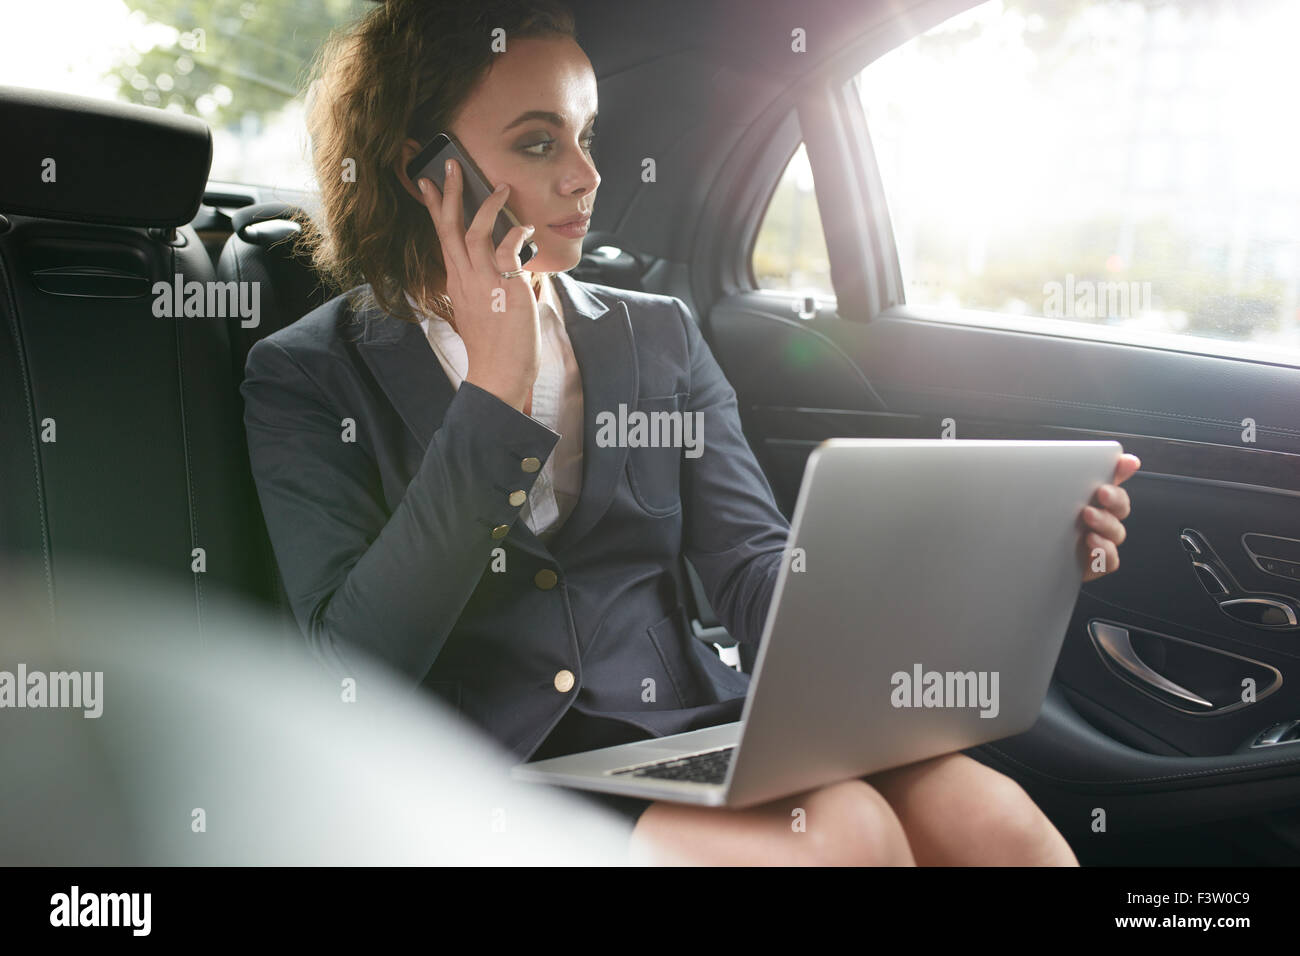 Businesswoman sitting on back seat of car with laptop talking on mobile phone. Female executive travelling to work - Stock Image